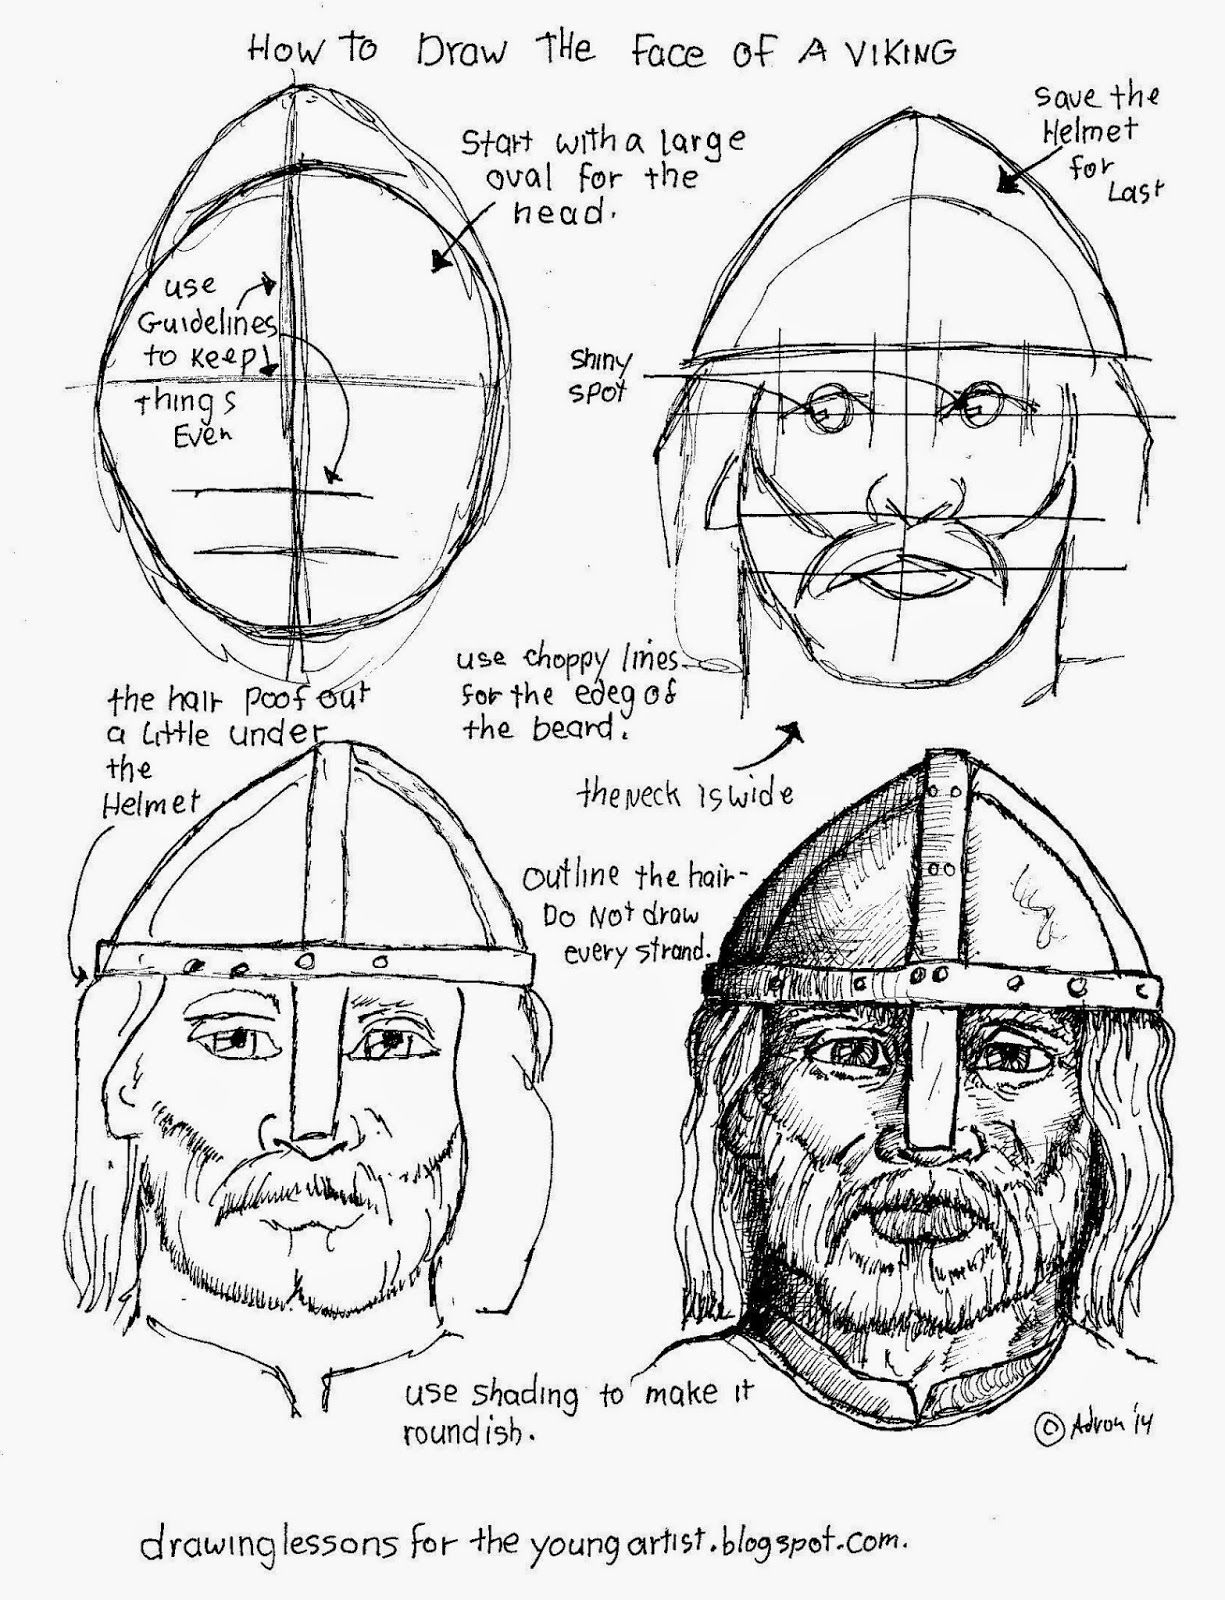 How To Draw A Viking's Face See More At My Blogger: Http: